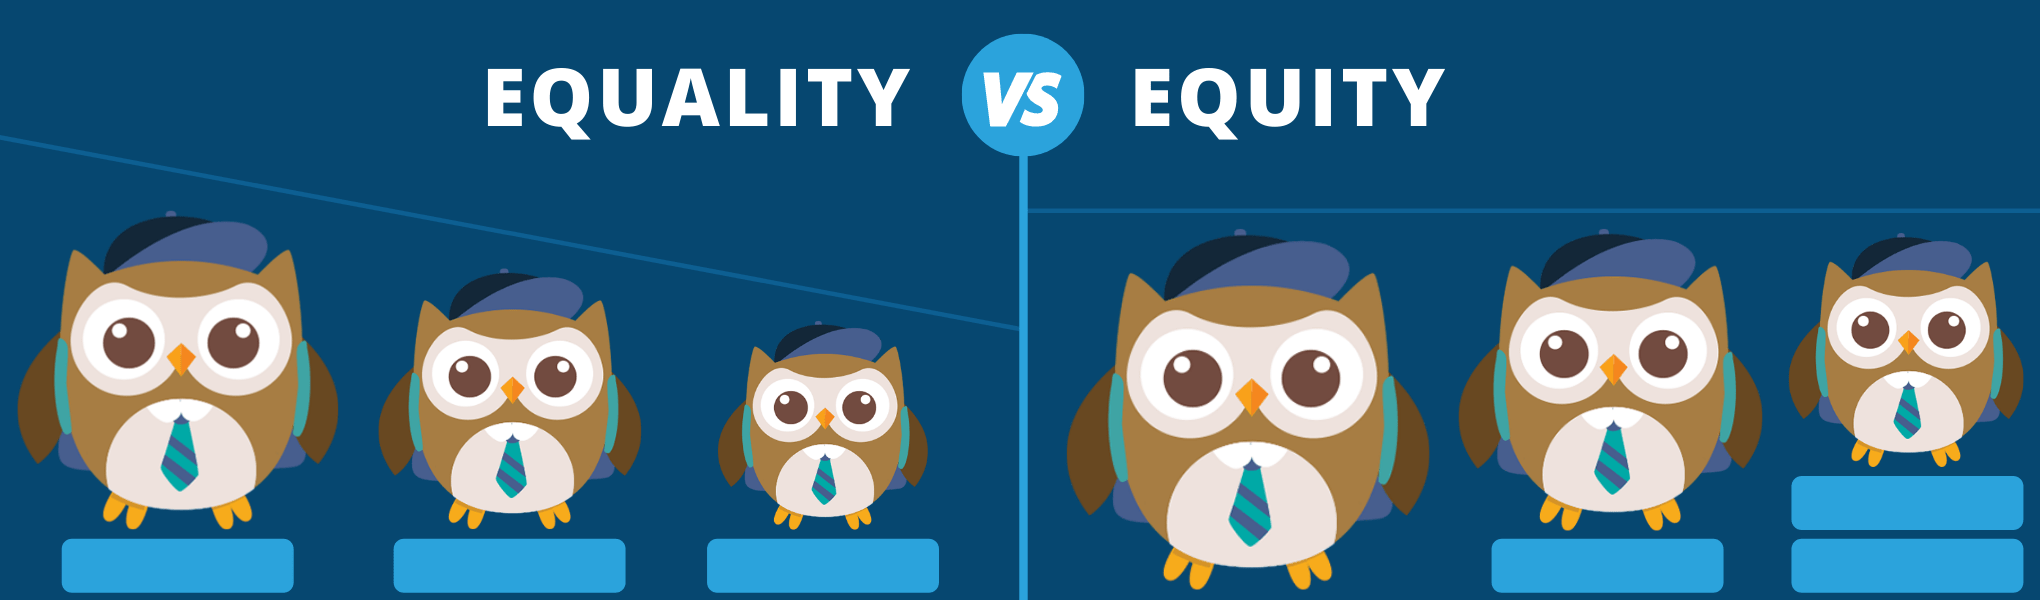 equity vs. equality graphic